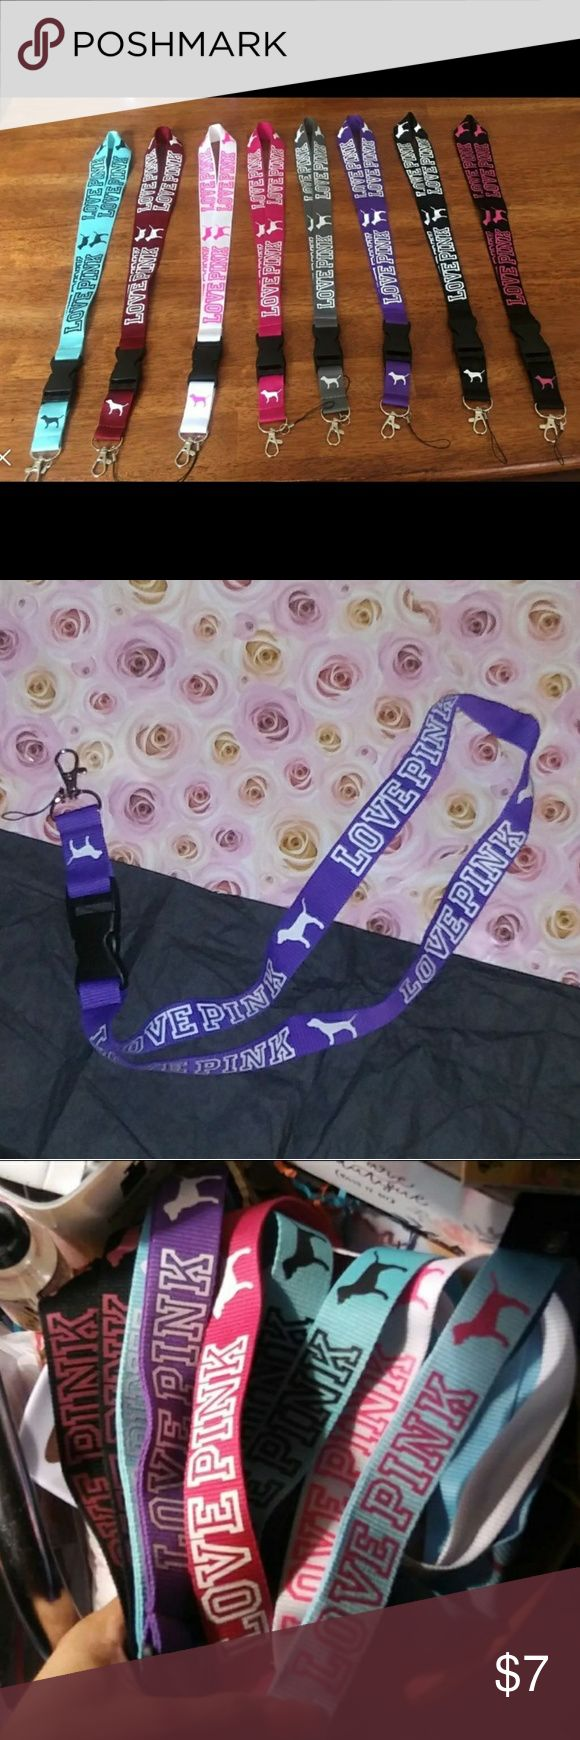 VS PINK LANYARD💜$7TODAY&TWMORW ONLY!💌 Brand New💞Victoria Secret PINK Lanyard!  💜This Listing is for the PURPLE&WHITE VS PINK LANYARD N Pic 2, I HAVE MANY OTHER COLORS TO CHOOSE FRM AS WELL AS SOME NEW COLORS I JUST GOT IN (PIC 1):)💞COLORS💞 💜BLACK&PINK💜PINK&WHITE💜TEAL&BLACK 💜WHITE&PINK💜MAROON&WHITE💜GRAY&WHITE 💜PURPLE&WHITE💜BLACK&WHITE 💜(1 Left)LITE BLUE/TEAL&PINK ☁PRICE IS FIRM ON THESE AS THIS IS THE LOWEST I CAN DO☁PLEASE REMEMBER $3 IS TAKEN OFFTOTAL!❤AS A SMALL GIFT U WILL…